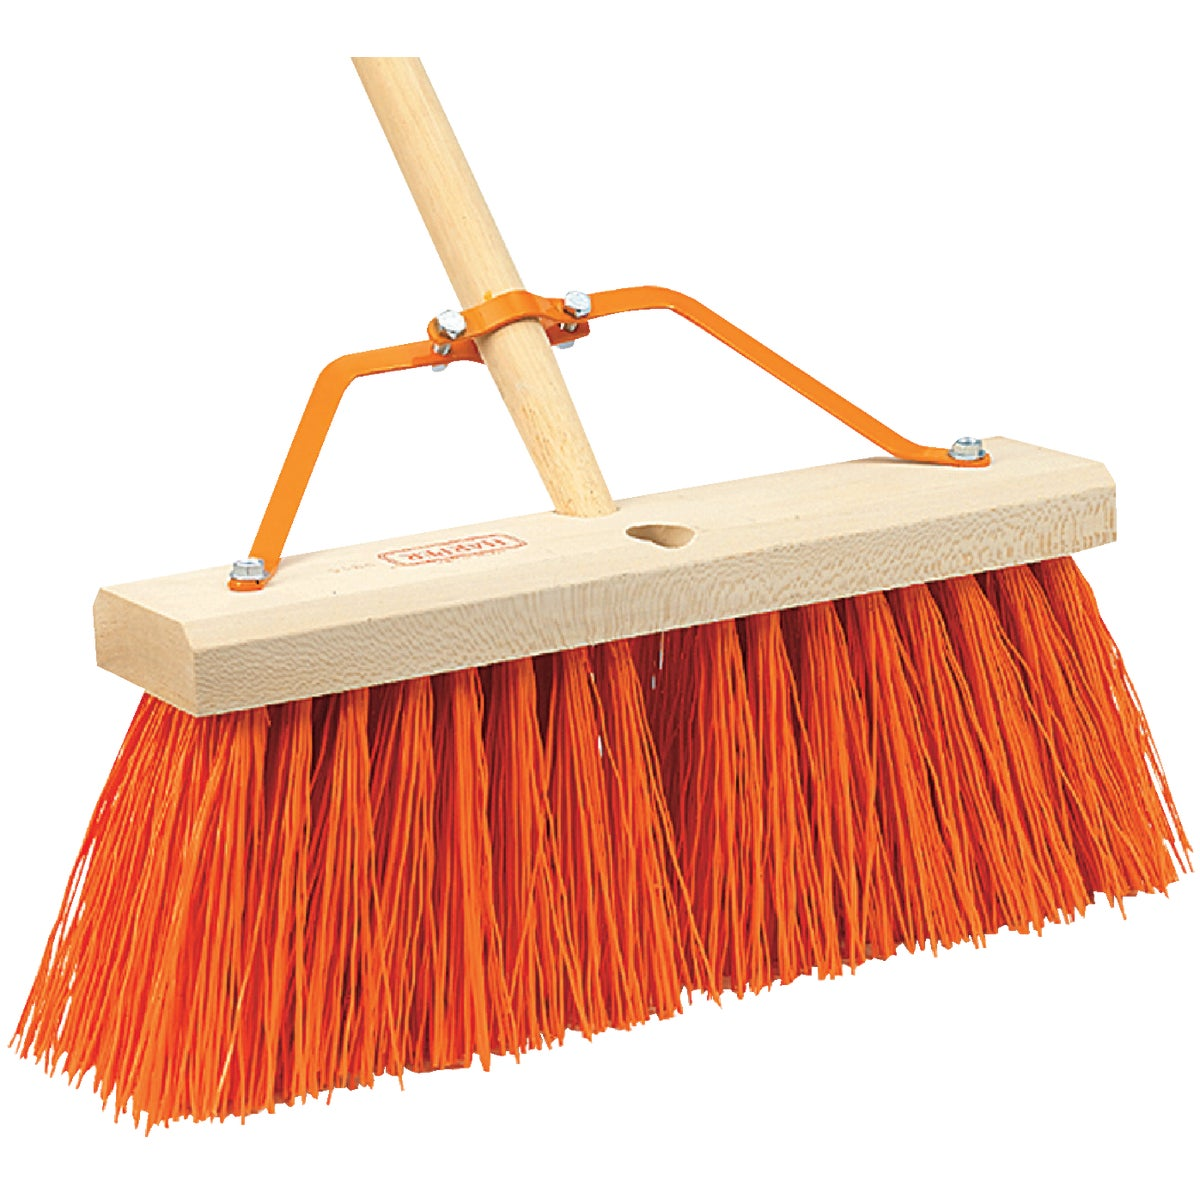 "16"" ROUGH STREET BROOM - 9816A by Harper Brush Incom"